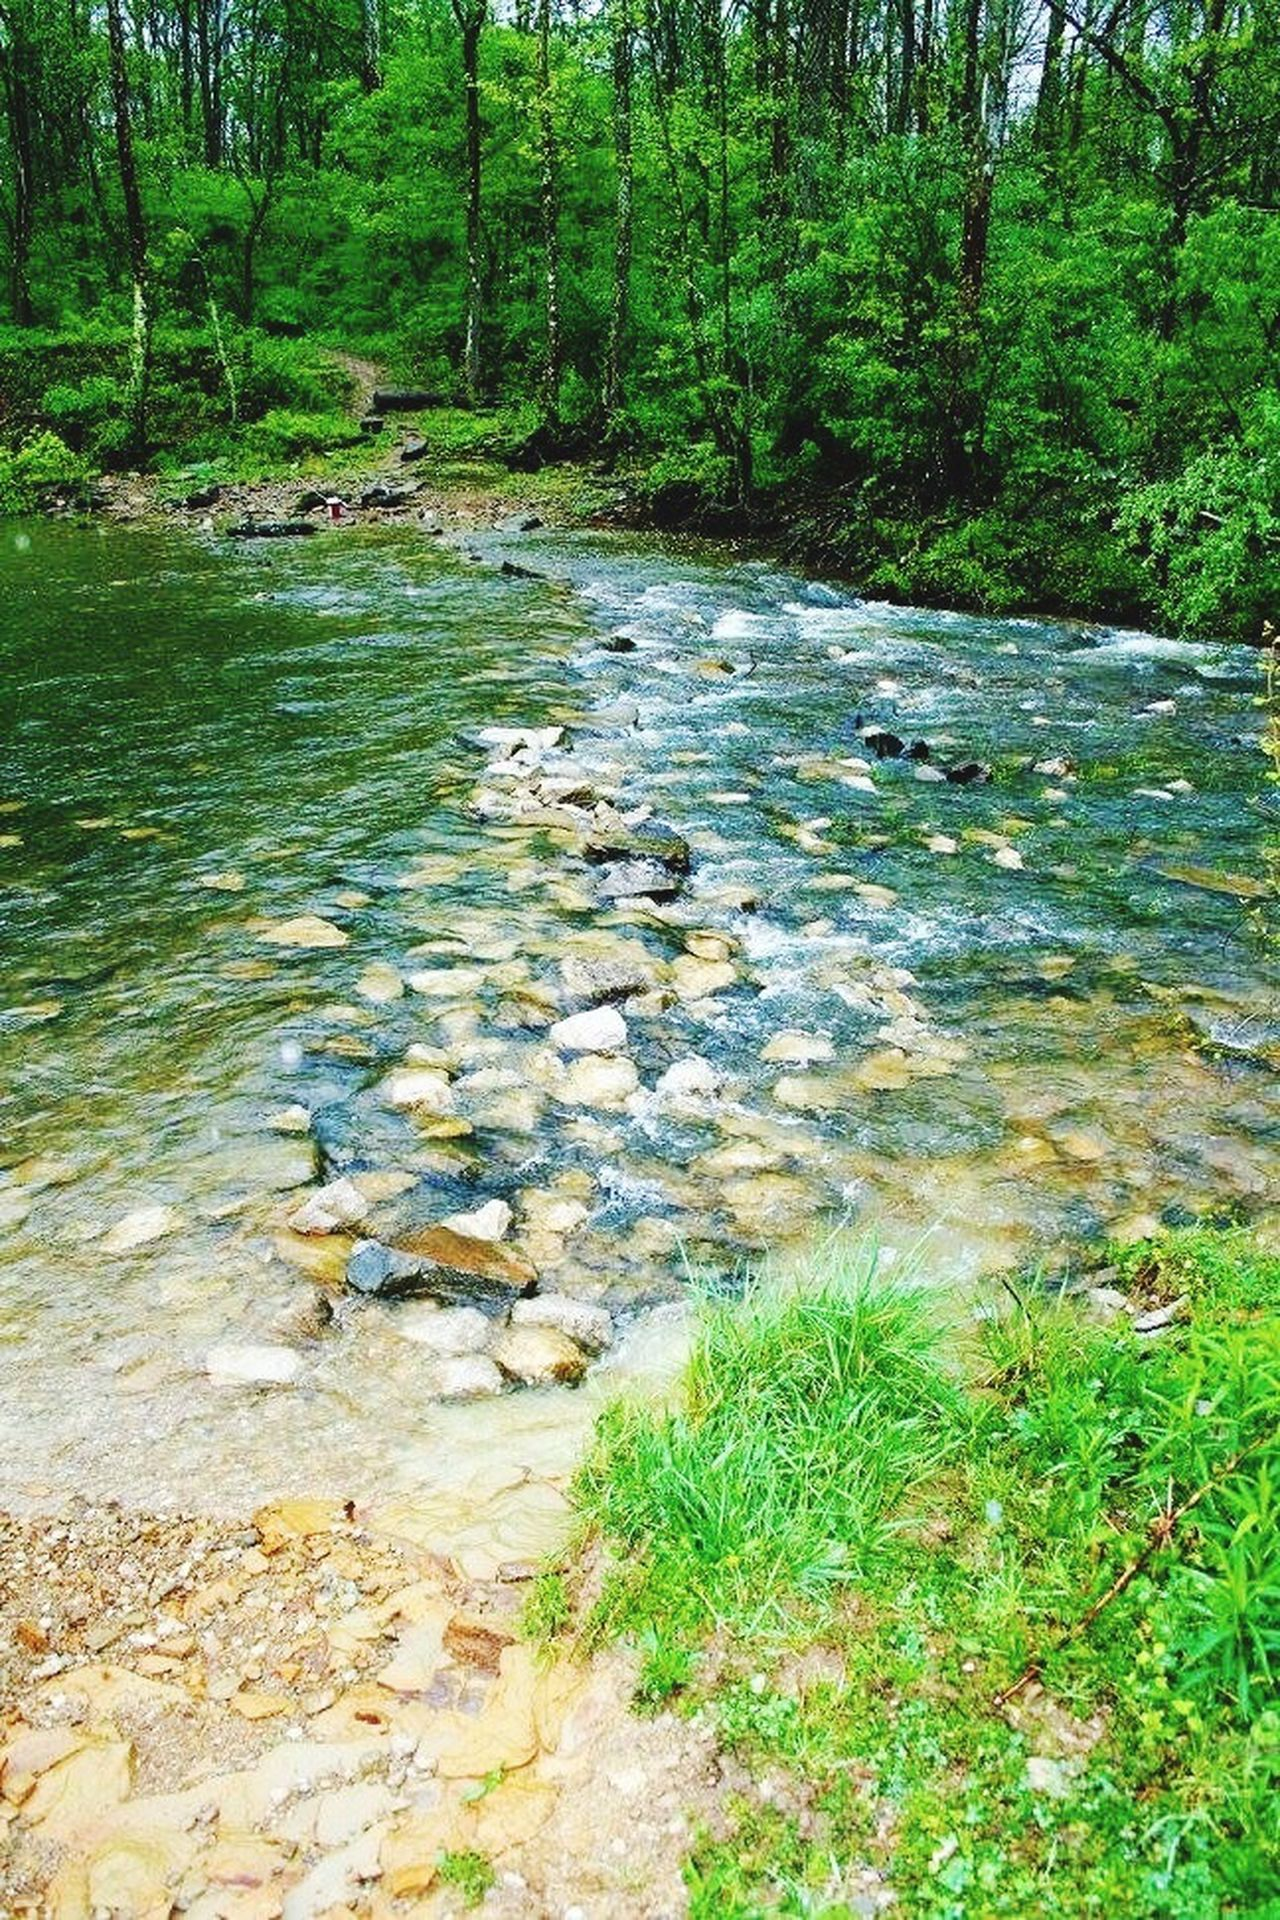 Creek crossing Rocks Rock Rocks And Water Tree Green Brook Stream Creek Nature Water_collection Water Creek Crossing Water Crossing Flowing Water Flowing Flowing Stream Flowingwater Photography Flowingwater Flowing Water In A Creek